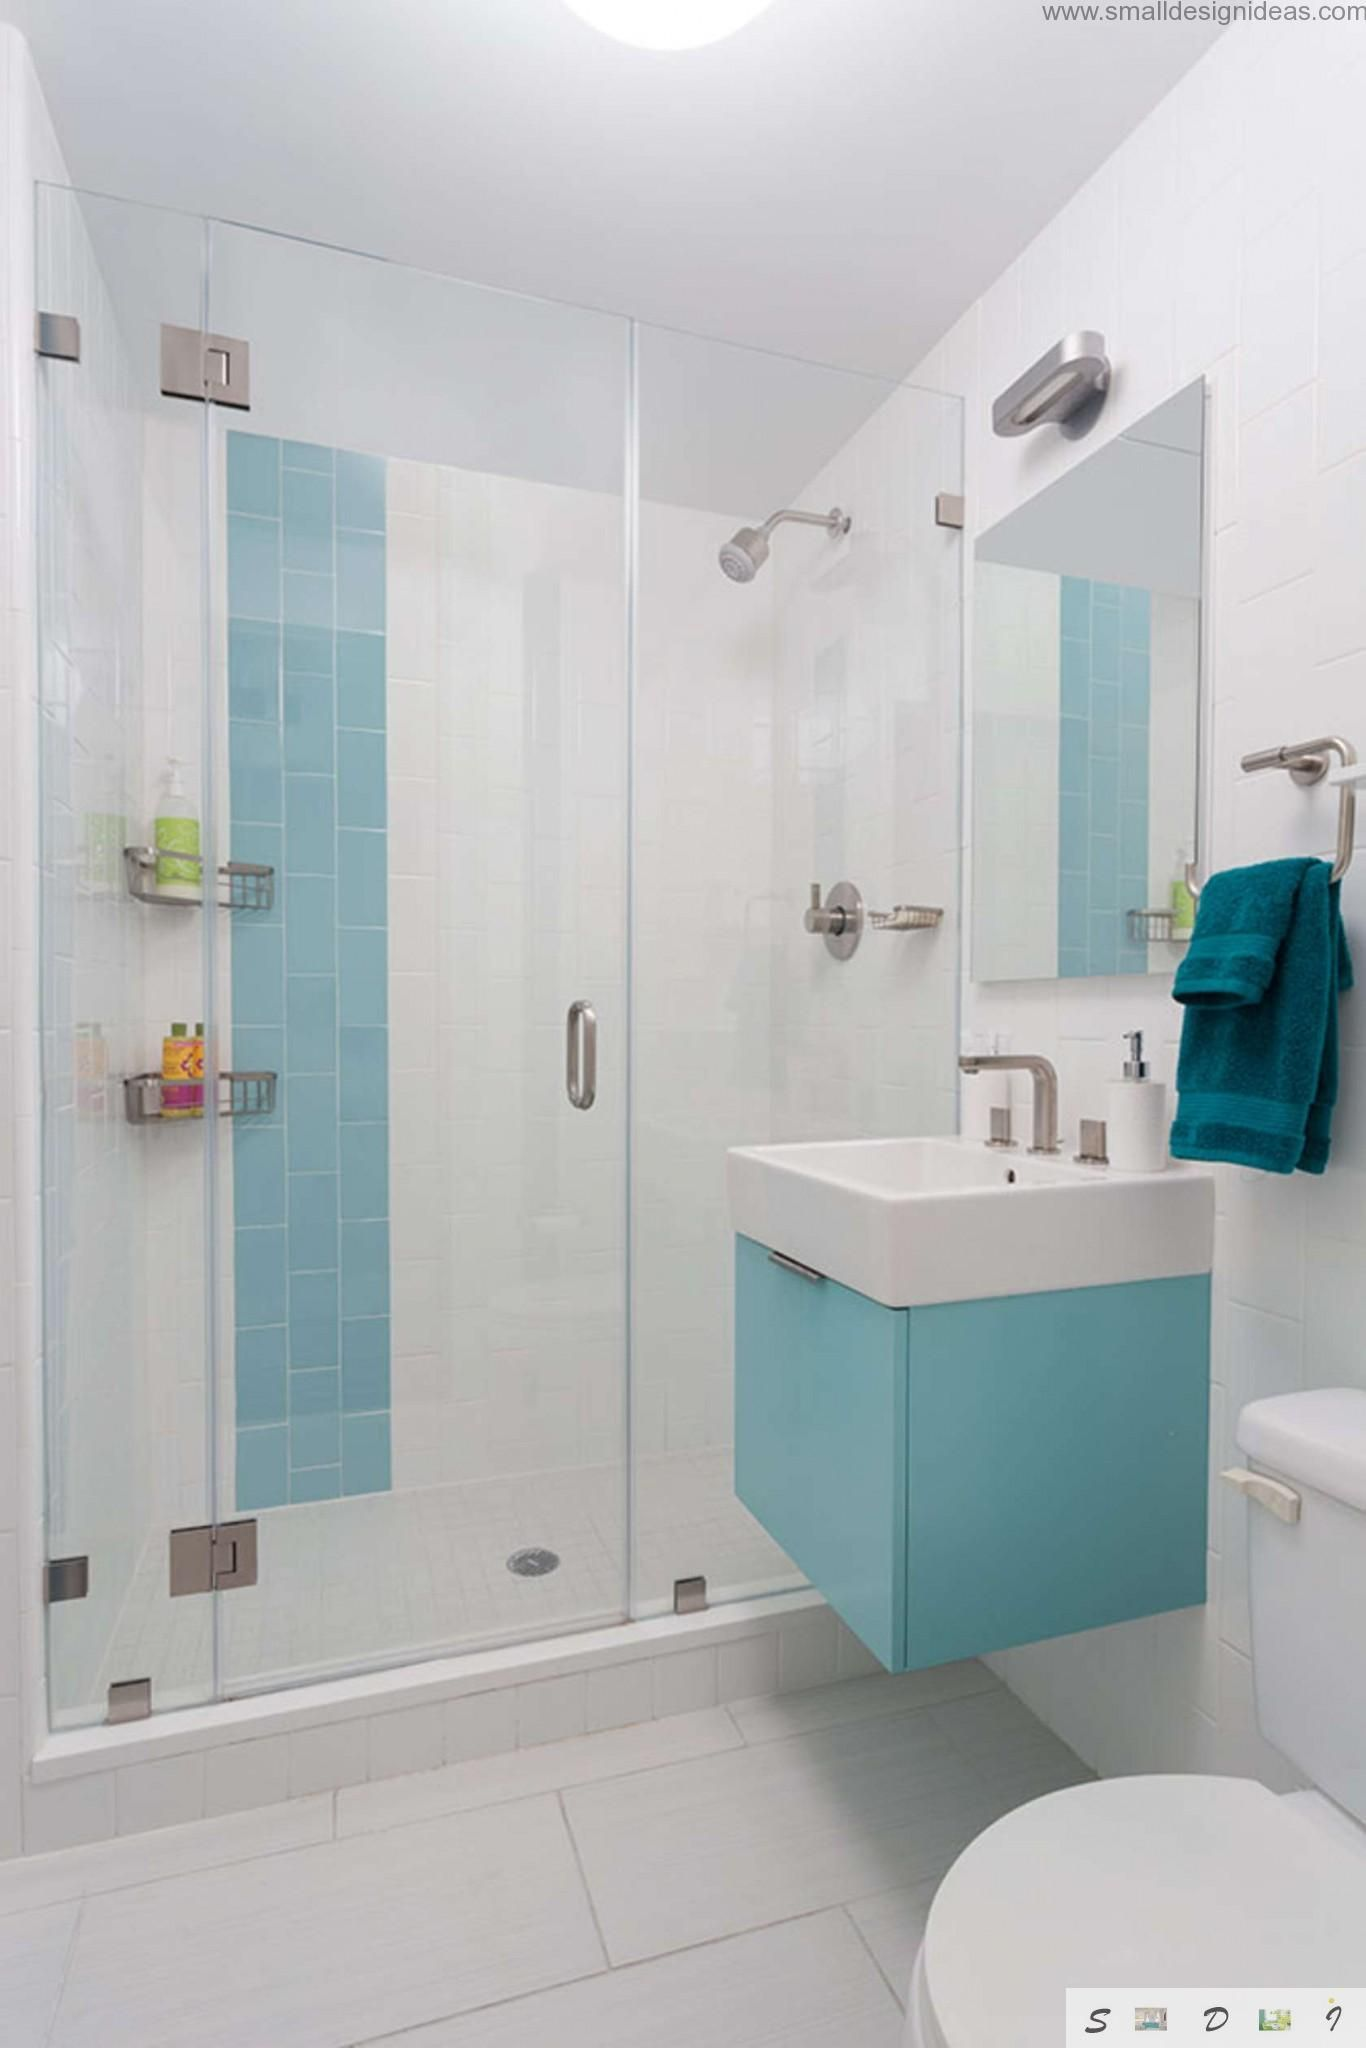 extra small bathroom ideas | ideas 2017-2018 | Pinterest | Turquoise ...